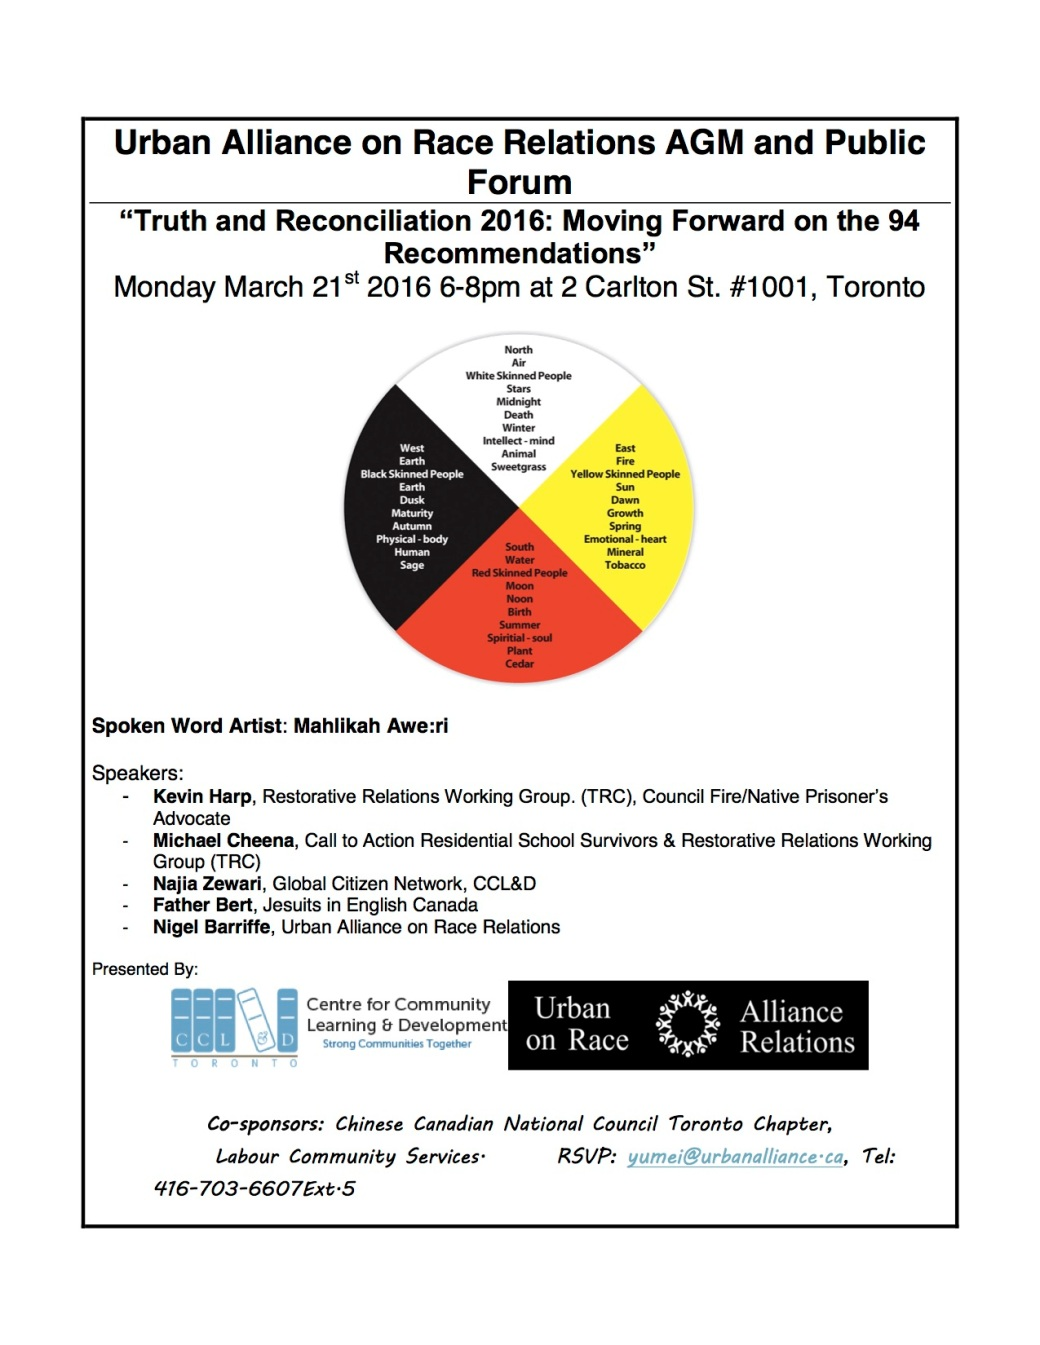 UARR AGM and Public Forum Flyer